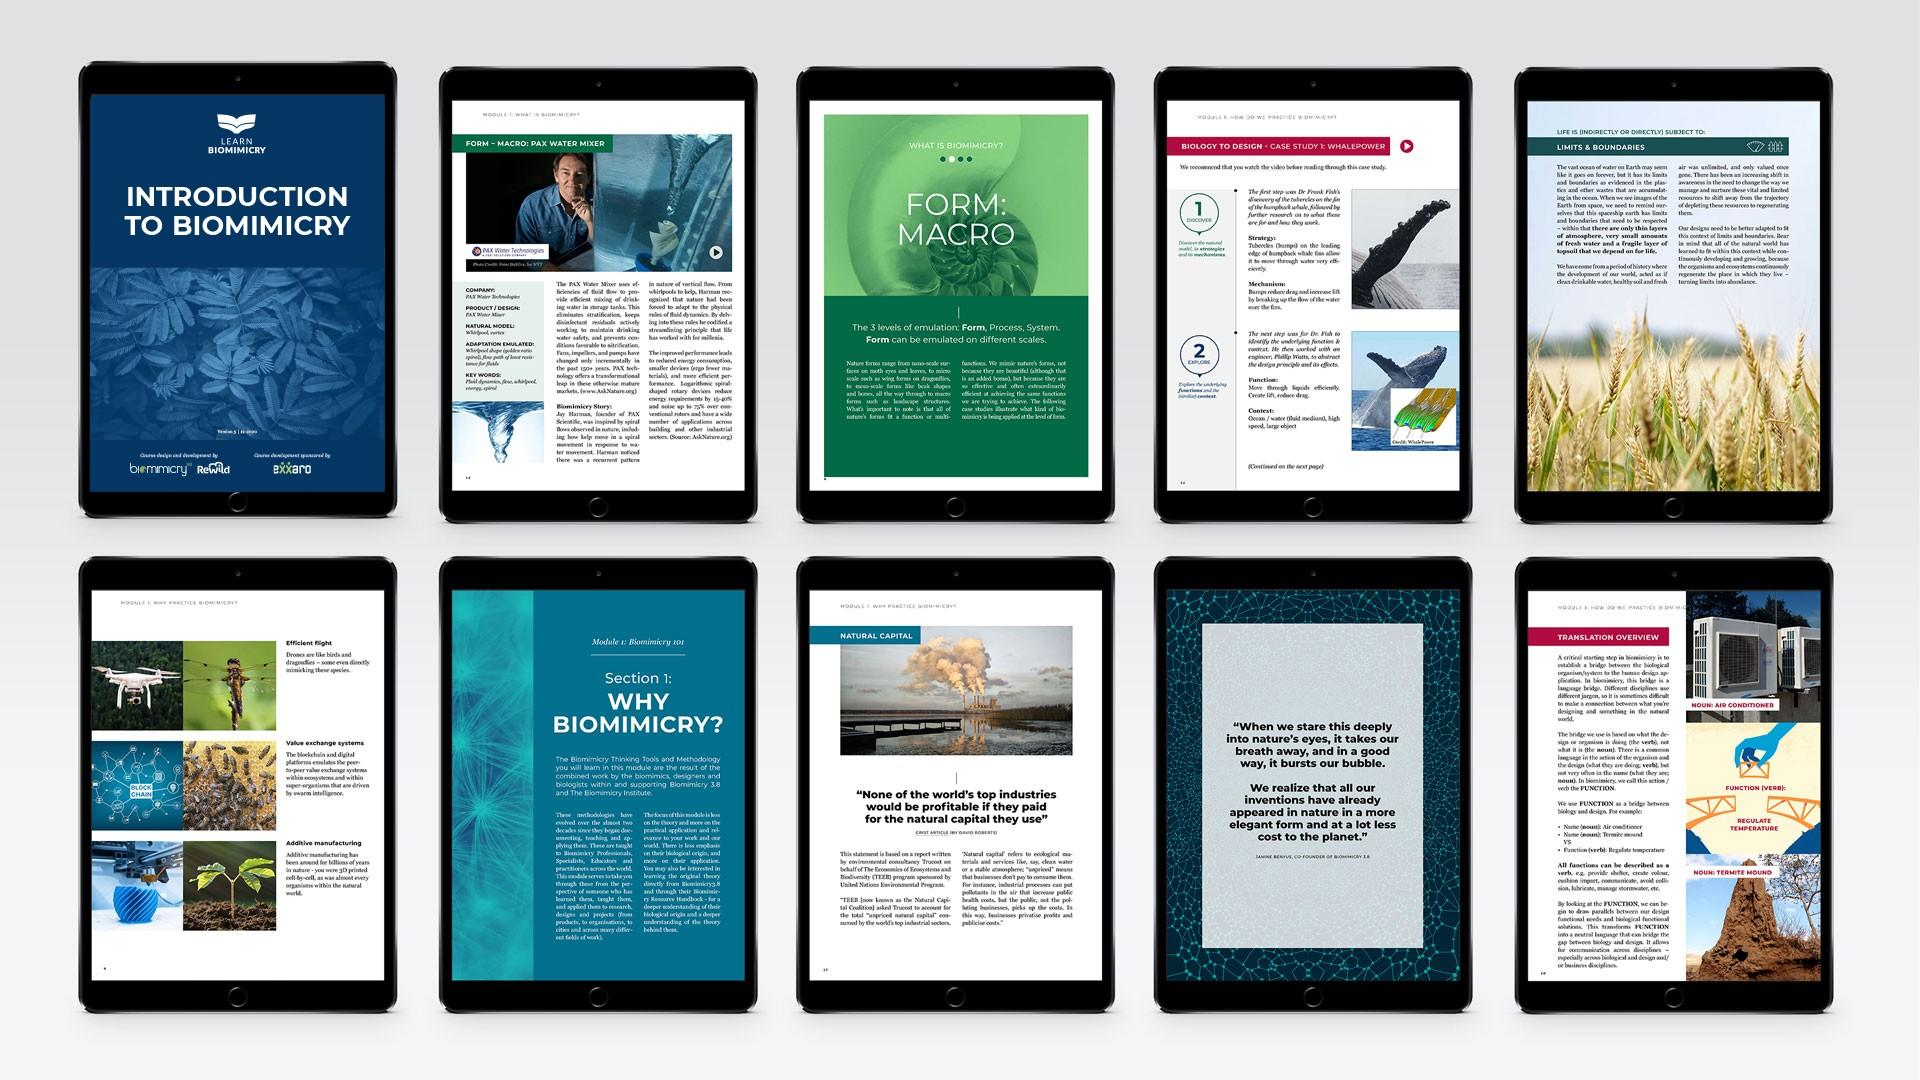 biomimicry online course textbooks